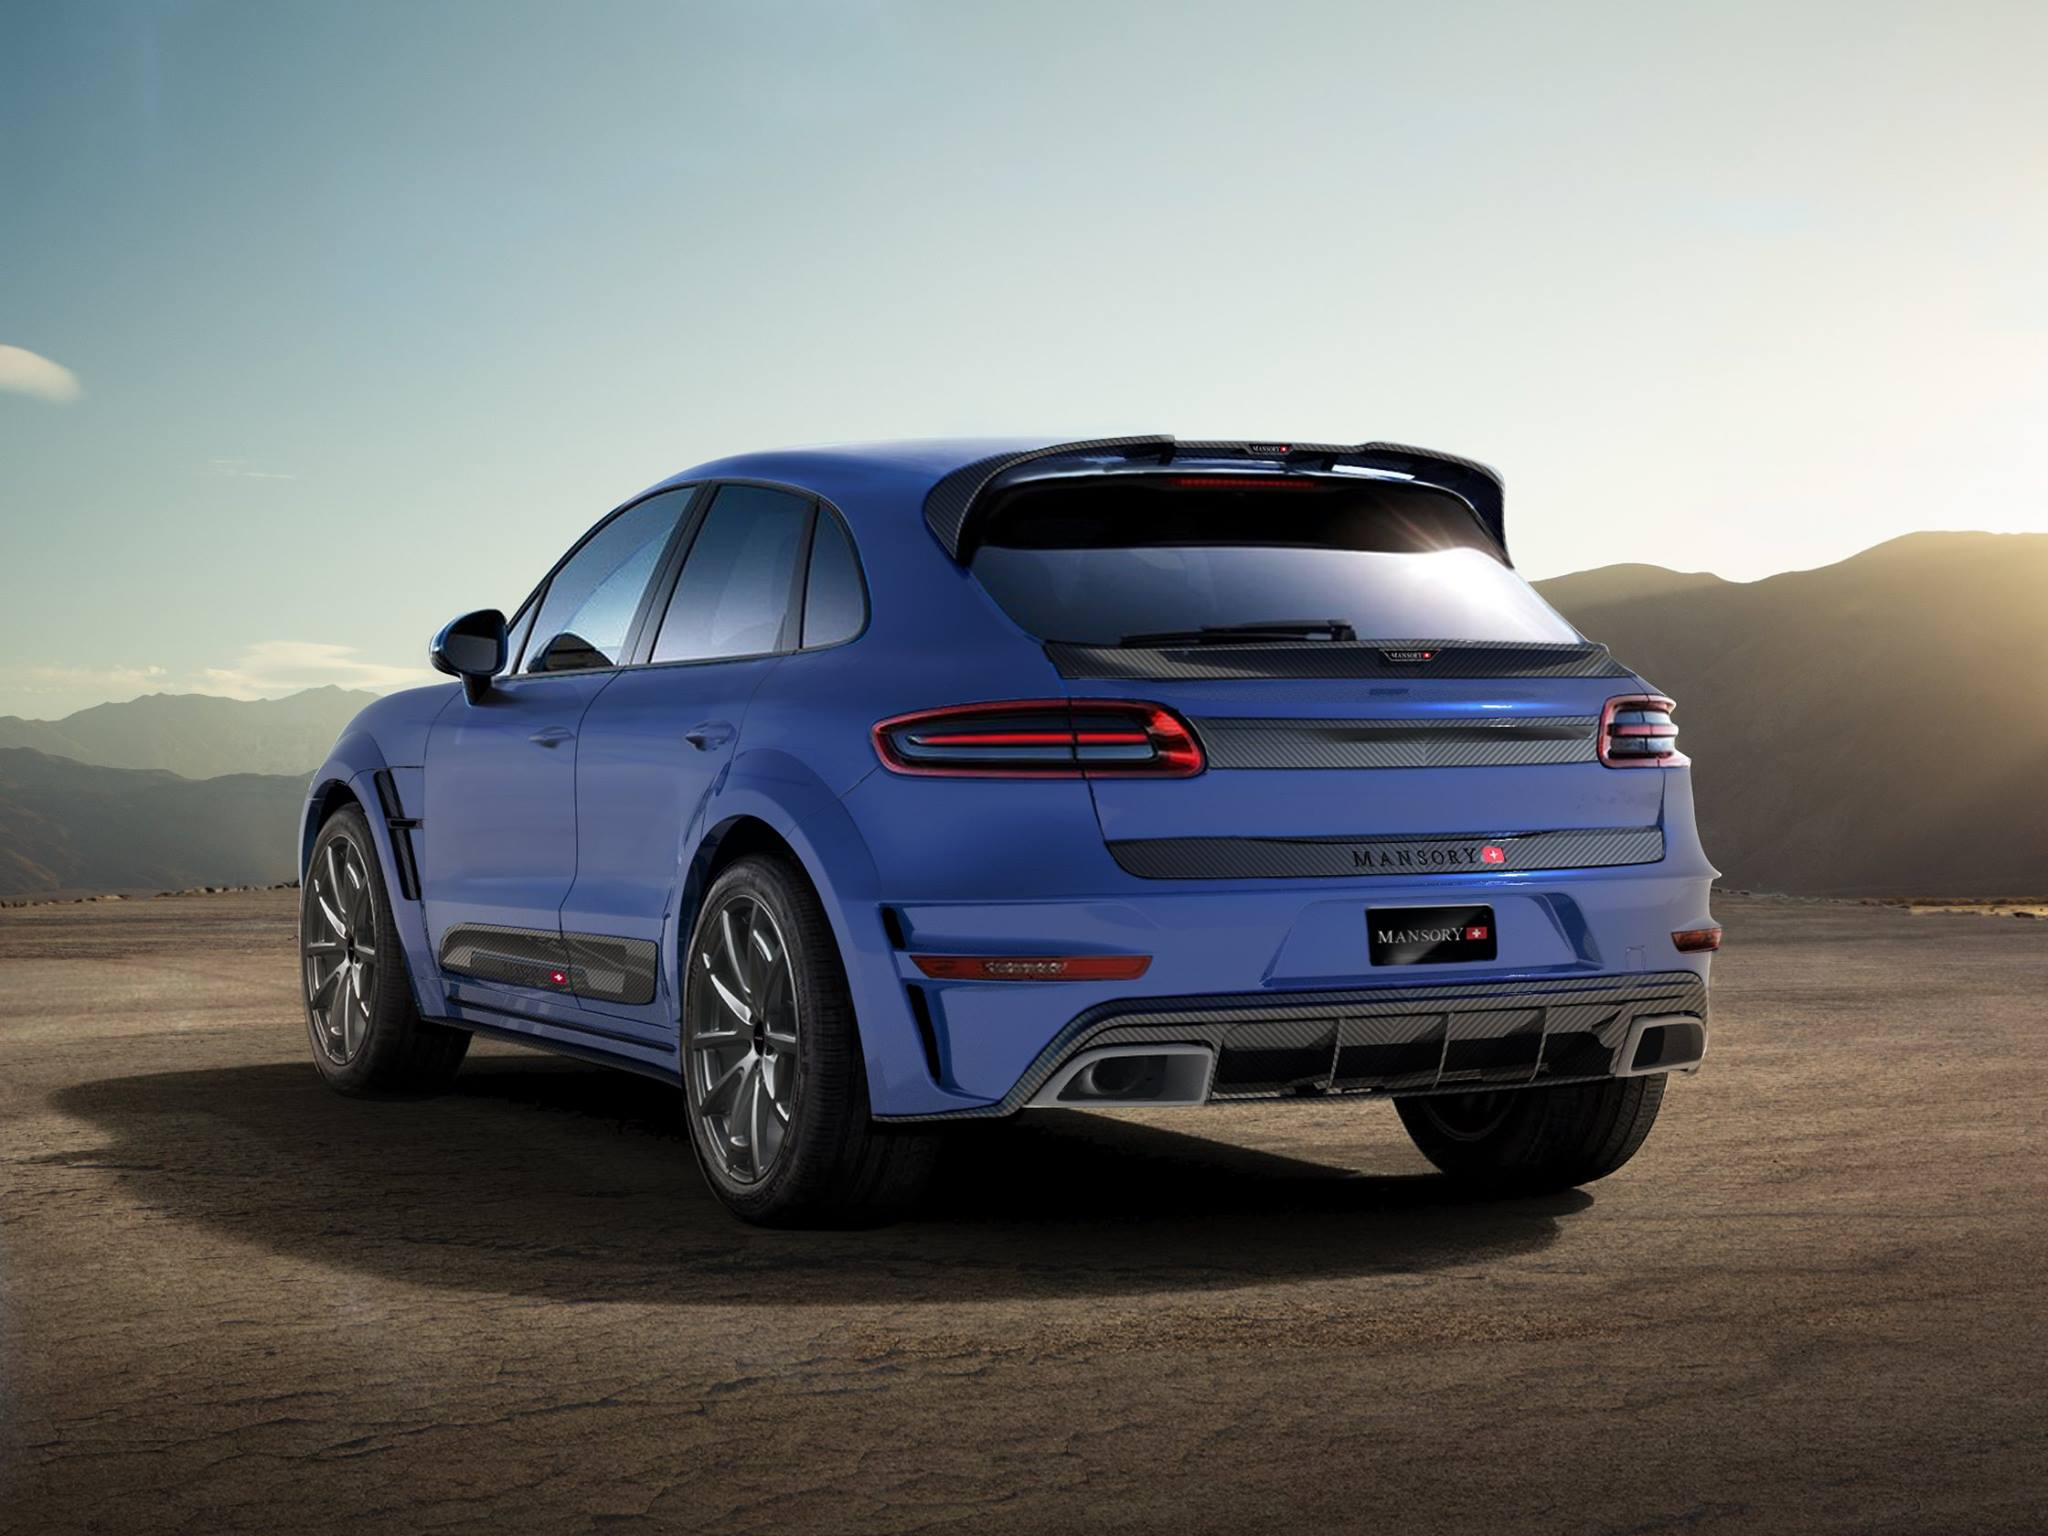 mansory-touches-the-porsche-macan-suv-outcome-looks-manly-and-ugly-at-the-same-time_2.jpg